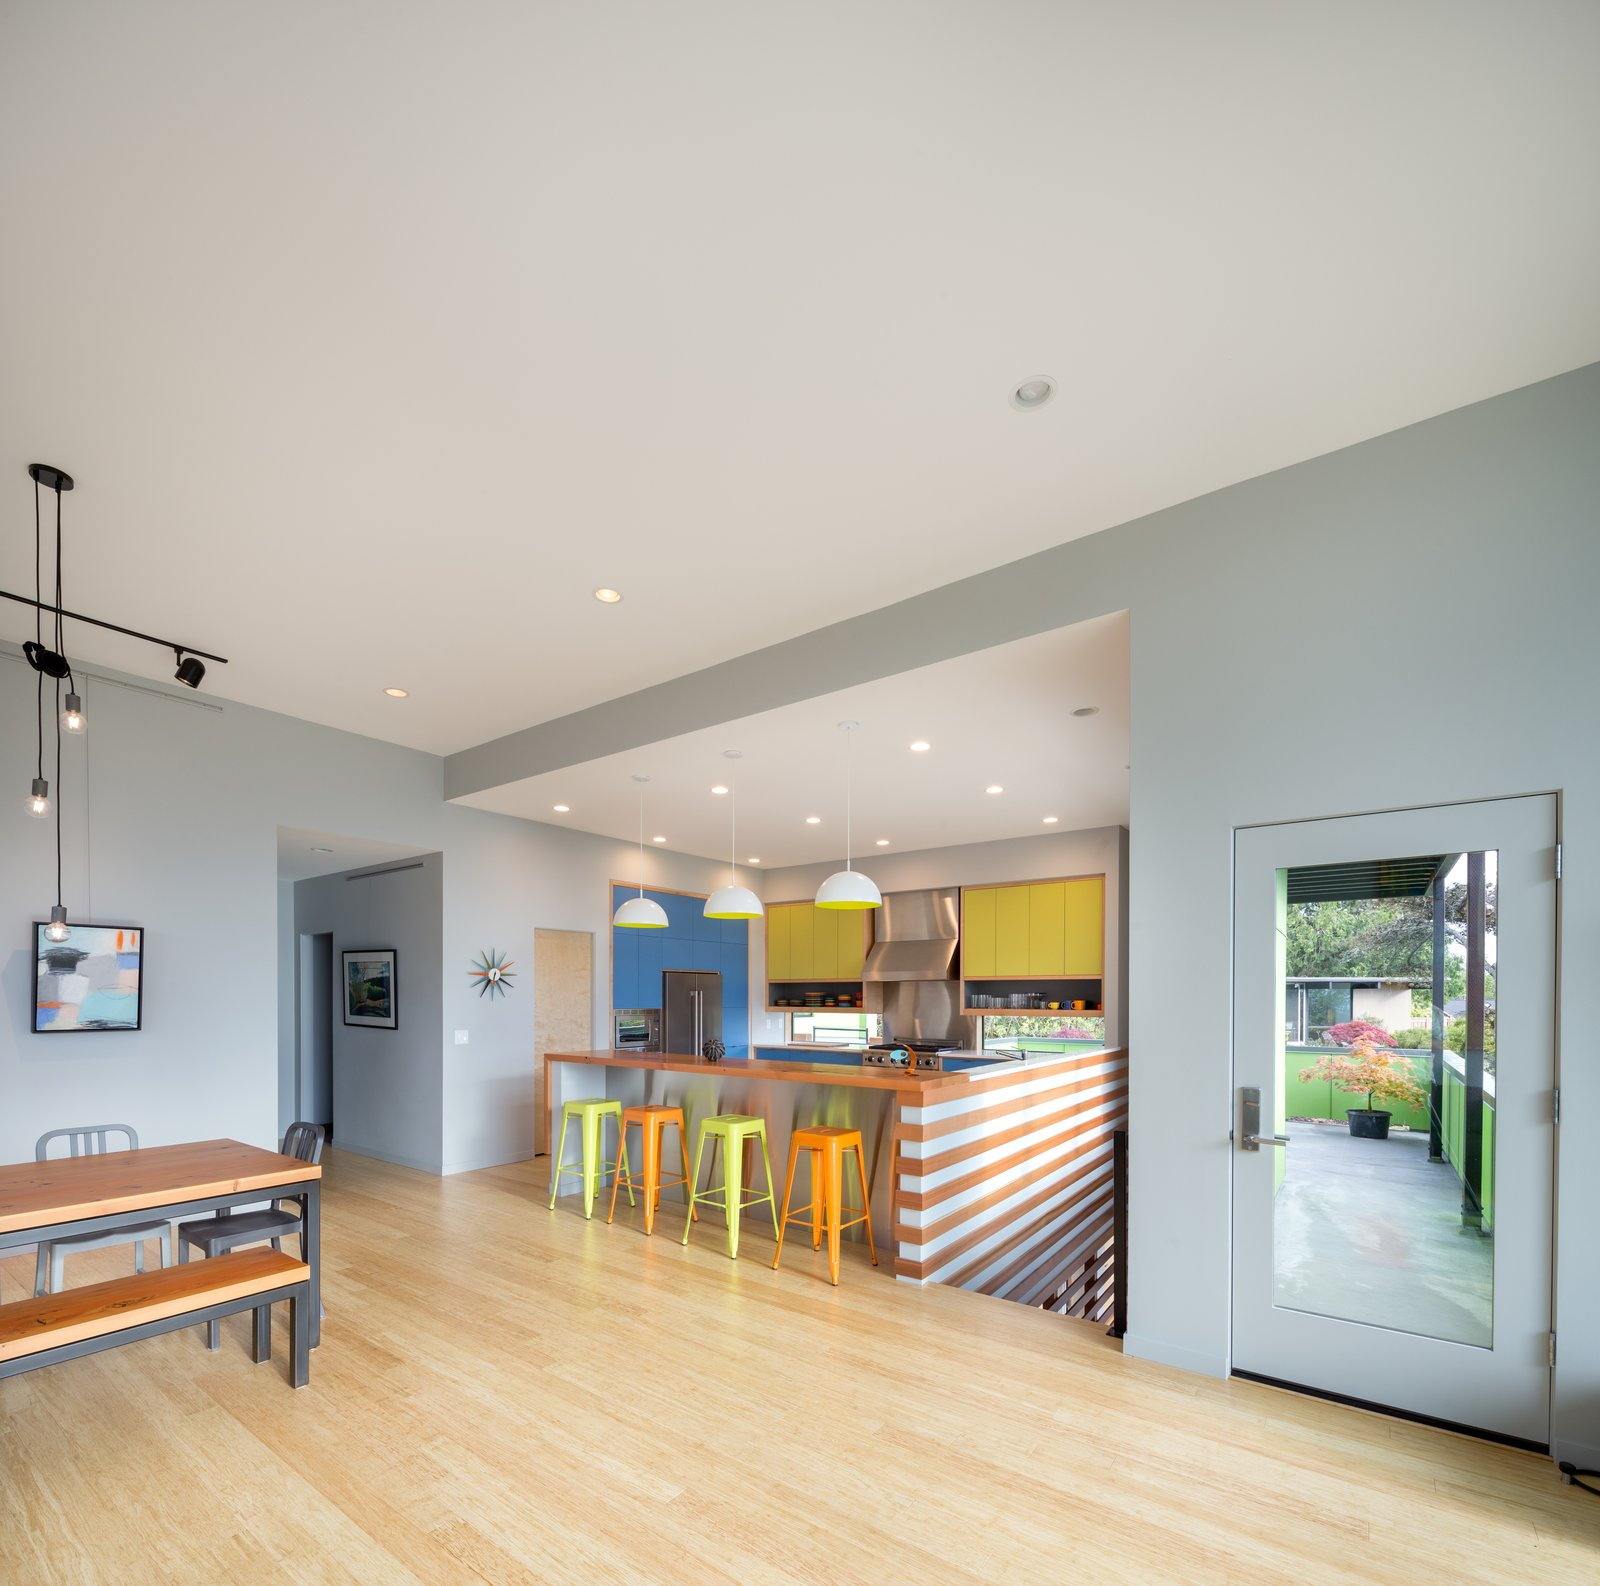 Kitchen, Quartzite Counter, Wood Counter, Colorful Cabinet, Medium Hardwood Floor, Pendant Lighting, and Recessed Lighting Living / dining / kitchen  Panavista Hill House by Steelhead Architecture